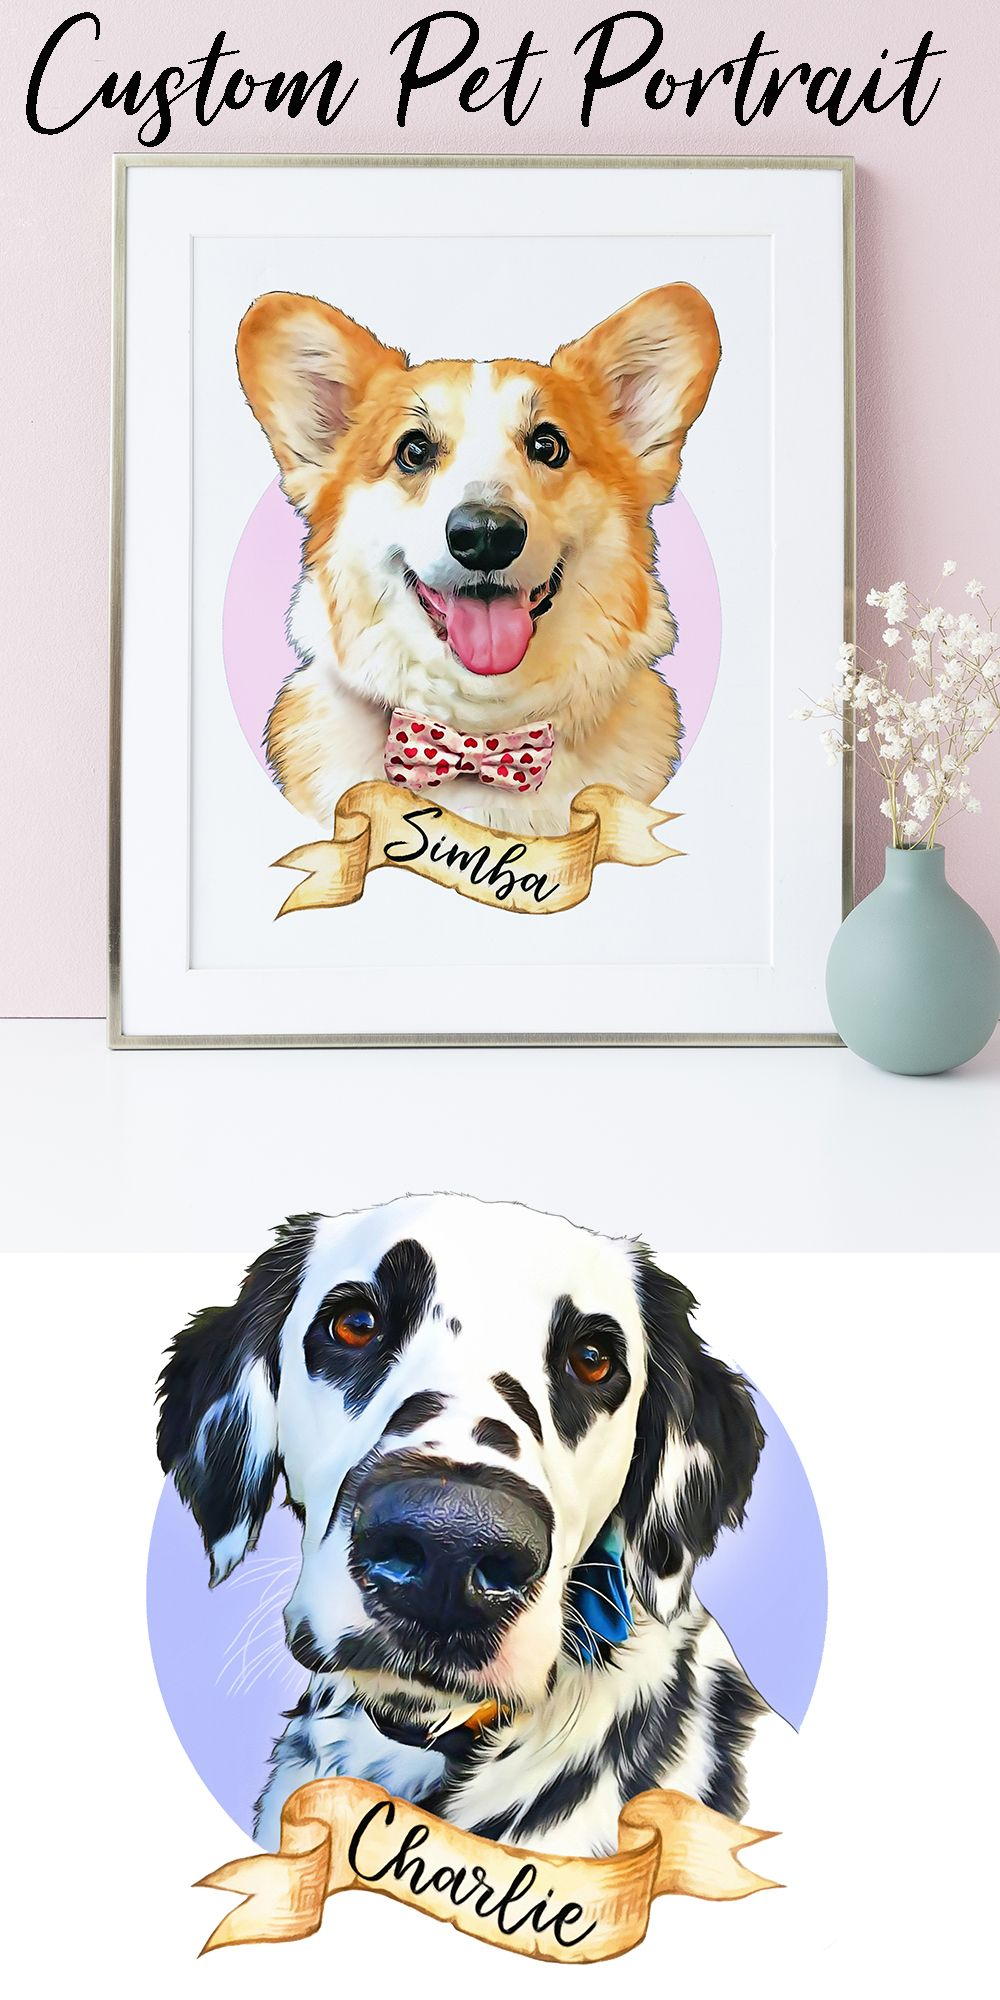 Looking For A Birthday Gift Your Dog Lover Friends And Family This Custom Portrait Will Be Her Joy To Behold Affordable Beautiful Unique Easy